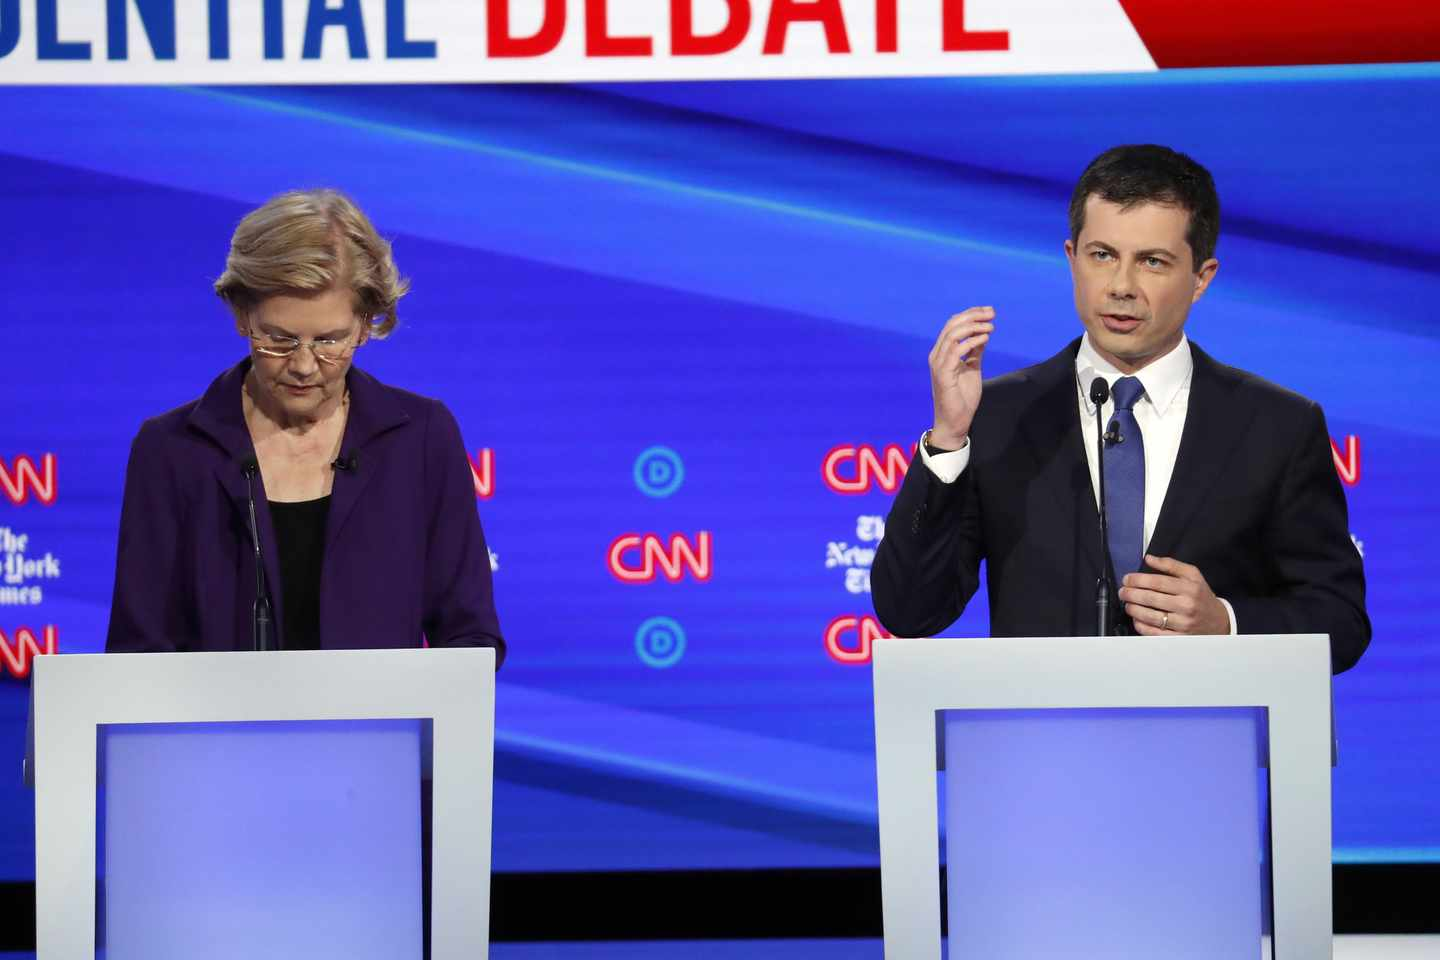 Key Points of Contention in the Democratic Debate